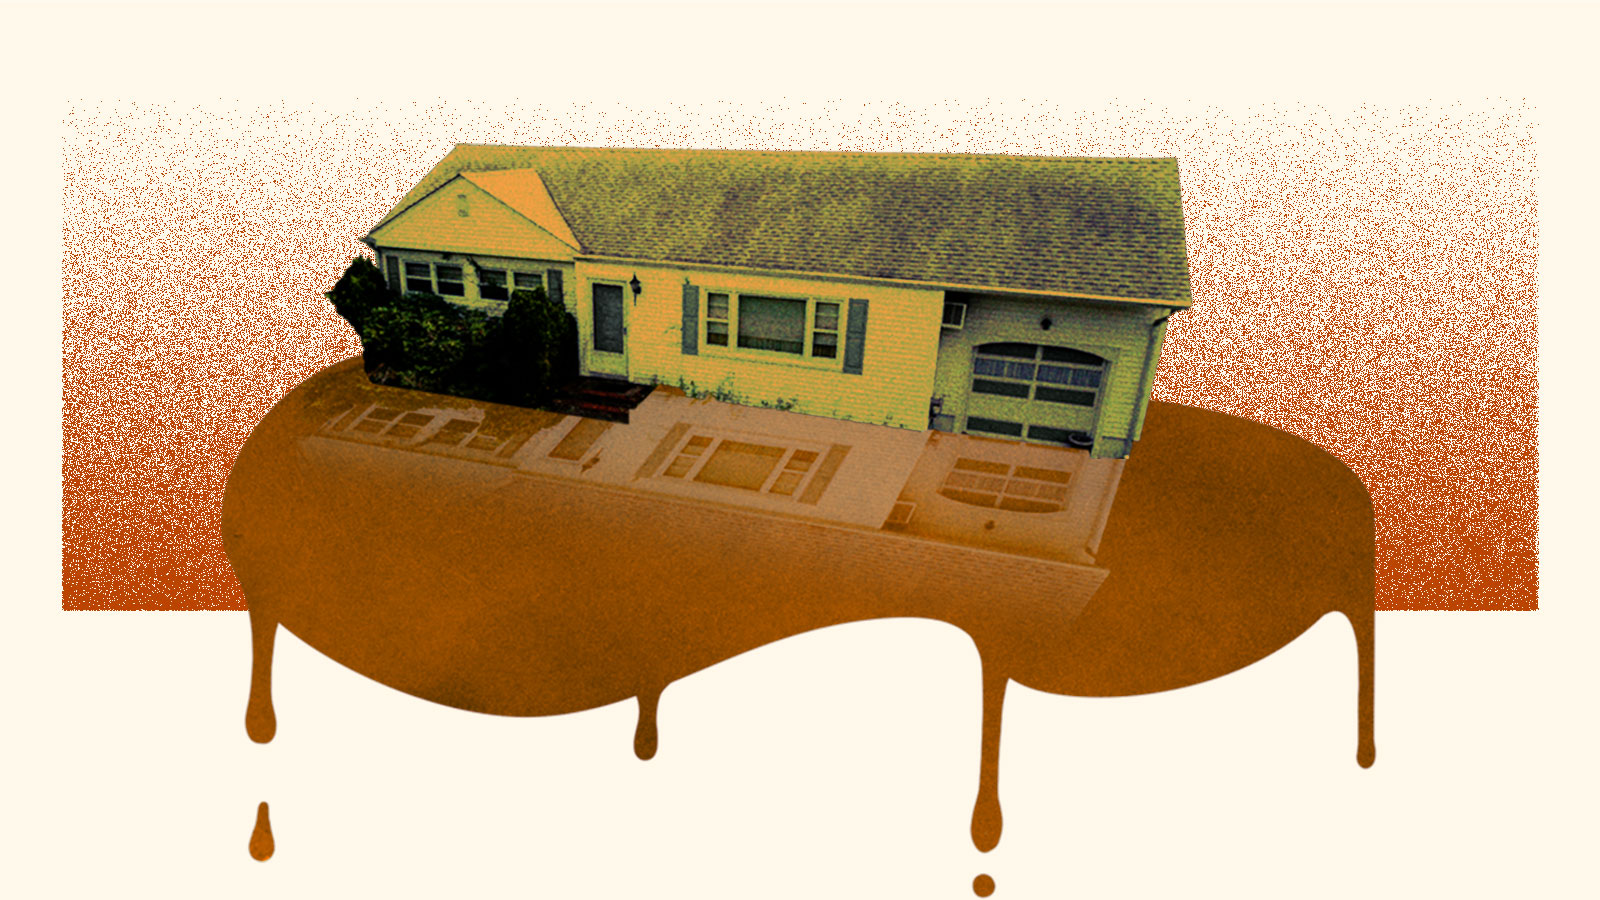 Collage: a ranch style house sitting on top of a leaking brown puddle